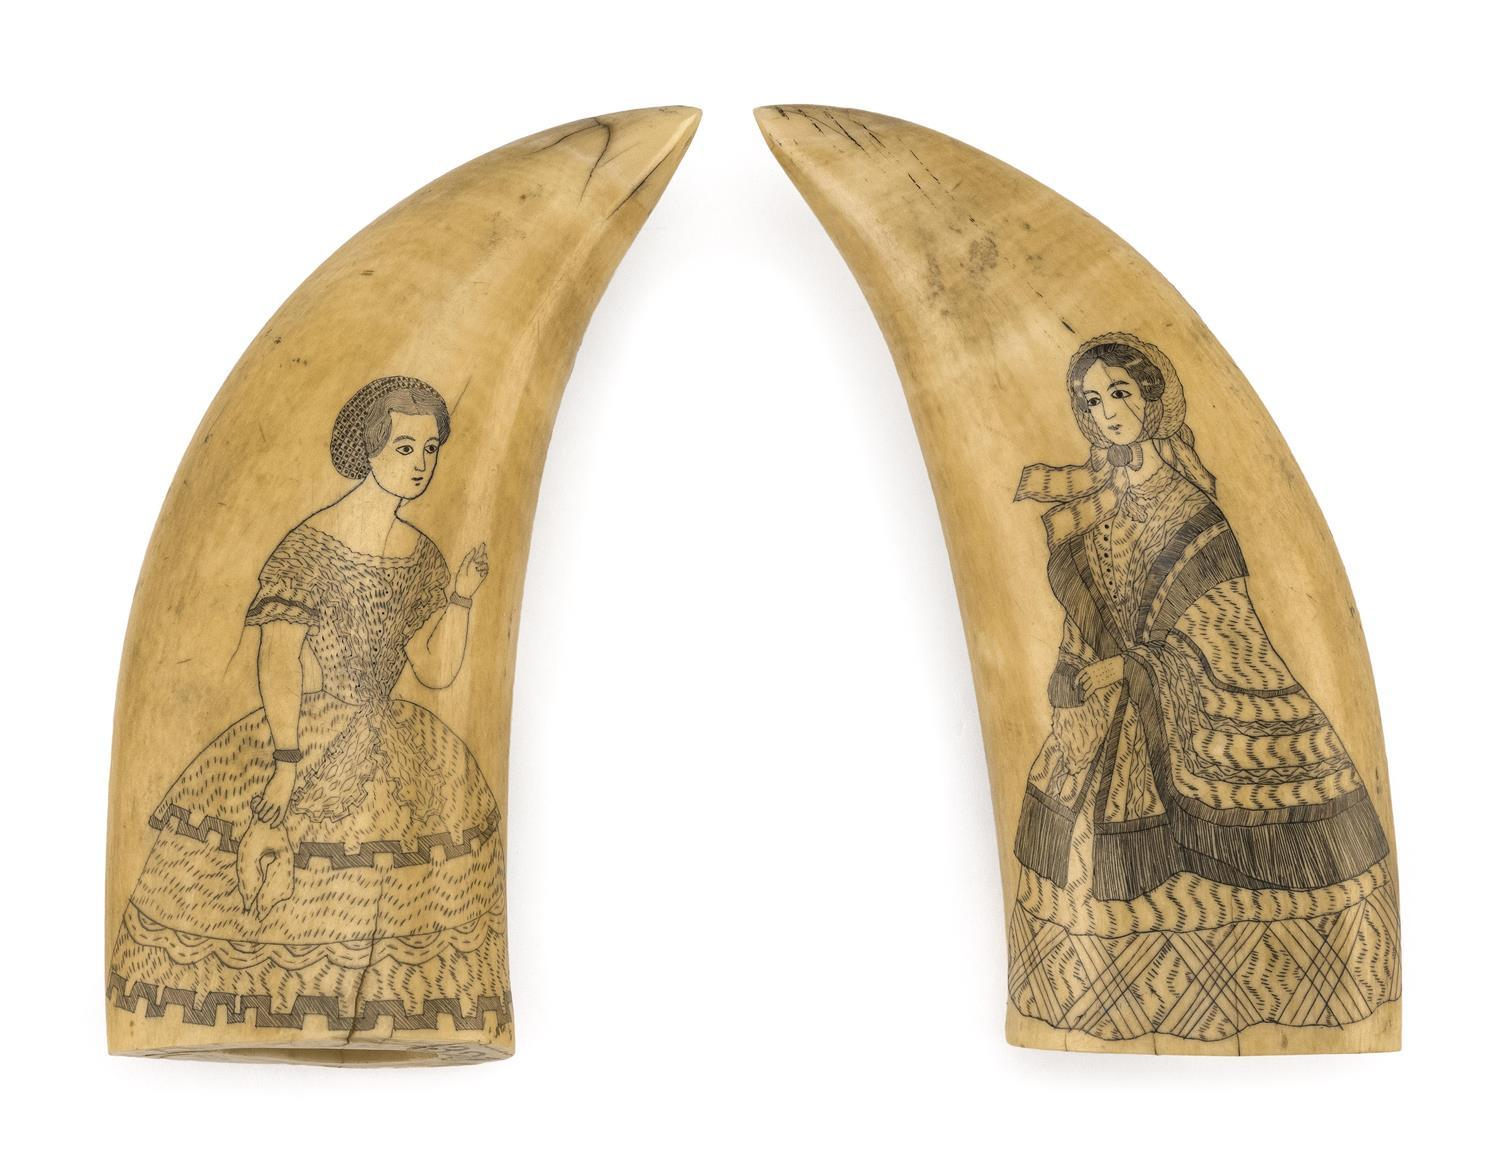 PAIR OF POLYCHROME SCRIMSHAW WHALE'S TEETH DEPICTING FASHION PLATE LADIES Both teeth with finely rendered portraits of elaborately d..